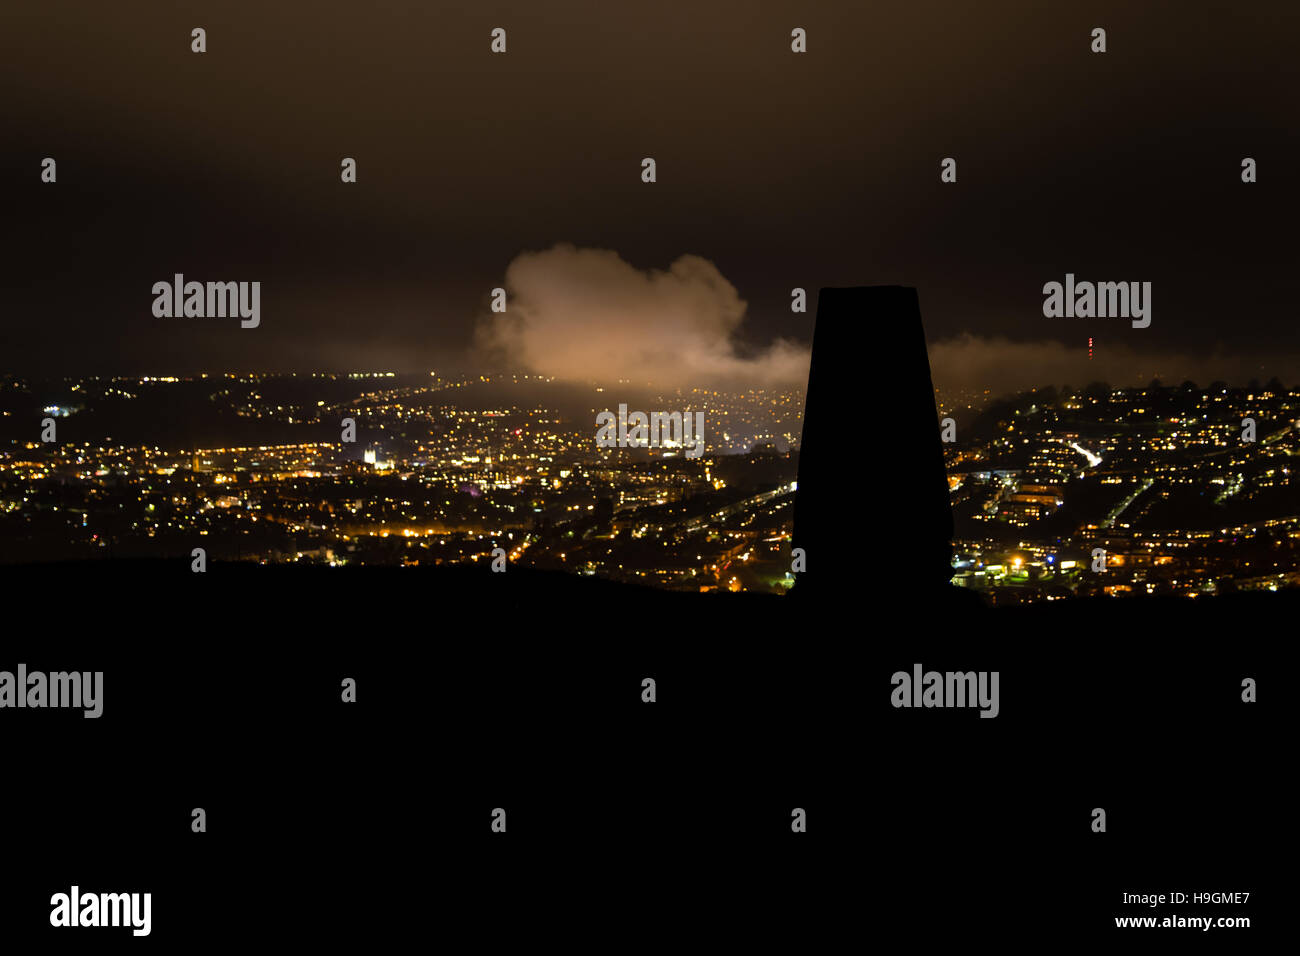 Silhouetted trig point on Little Solsbury Hill. Night view of City of Bath, with stone for cartographic triangulation - Stock Image